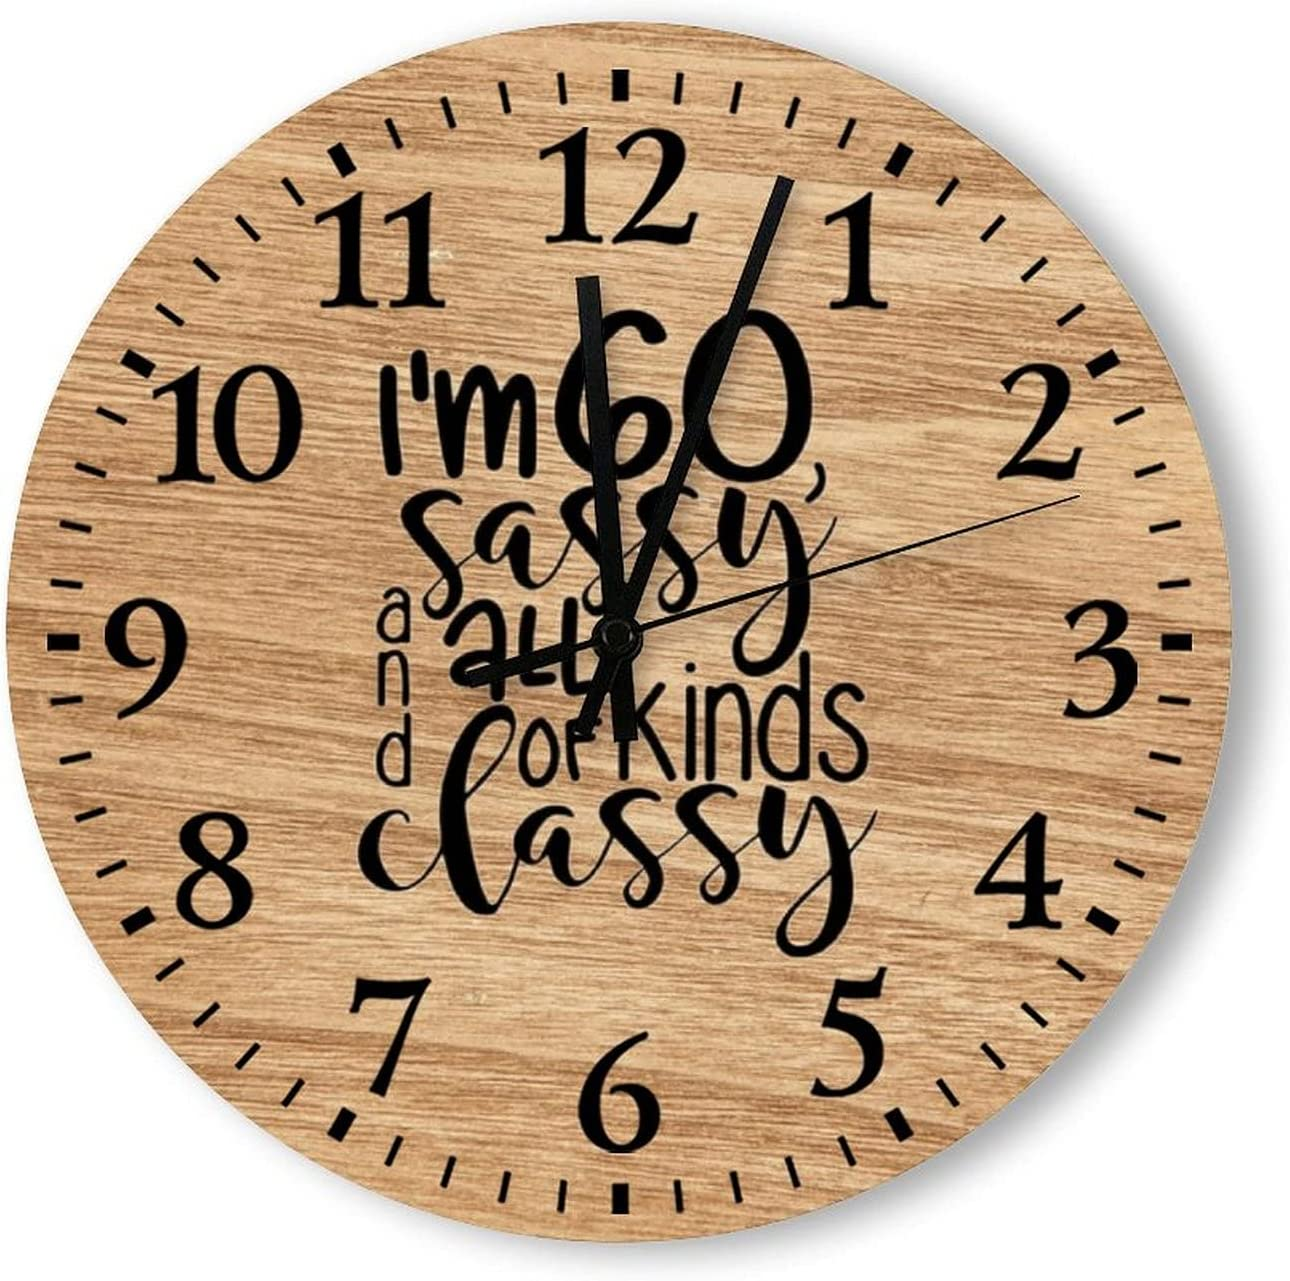 Wood Wall Clock Popular brand - I'm Ranking TOP7 60 Sassy and 14 of Classy All inc Kinds 12